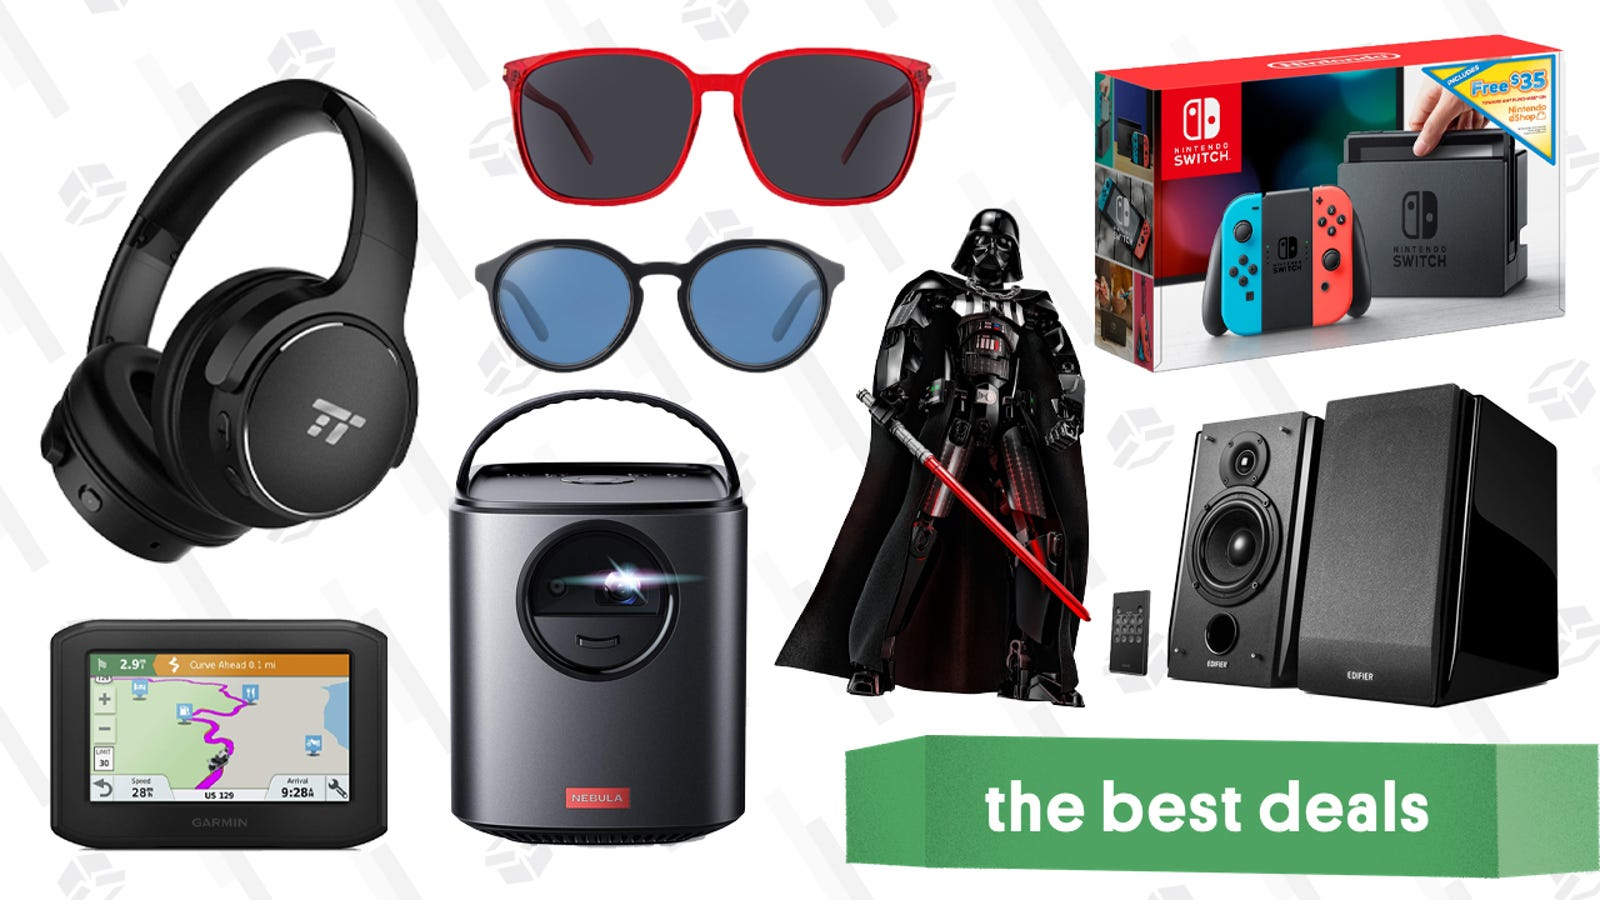 QnA VBage Friday's Best Deals: LEGO Darth Vader, Marmot, Nintendo Switch, Anker Projectors, and More